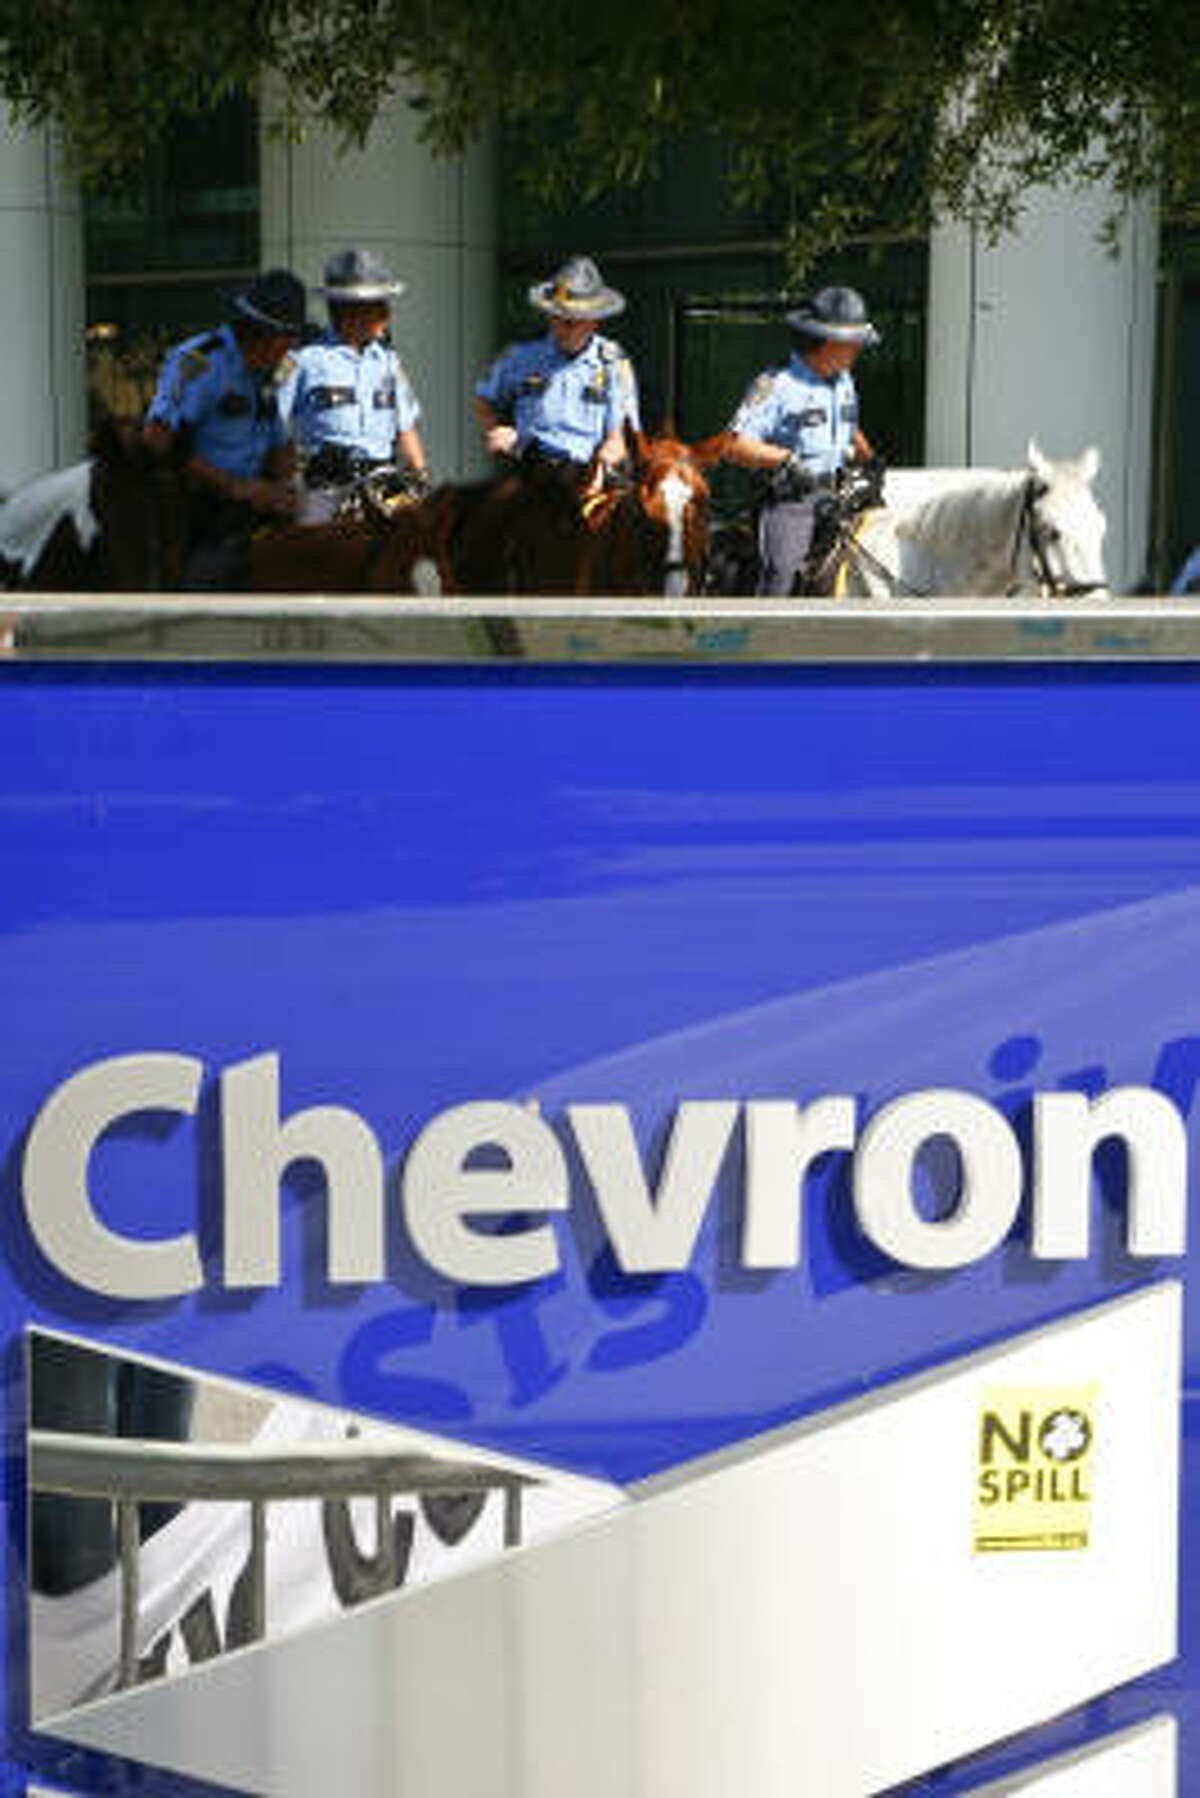 Houston police officers on horses stand guard outside the Chevron building at 1500 Louisiana St. where about 50 activists were on hand to protest the Chevron shareholders meeting Wednesday, May 26, 2010, in Houston.